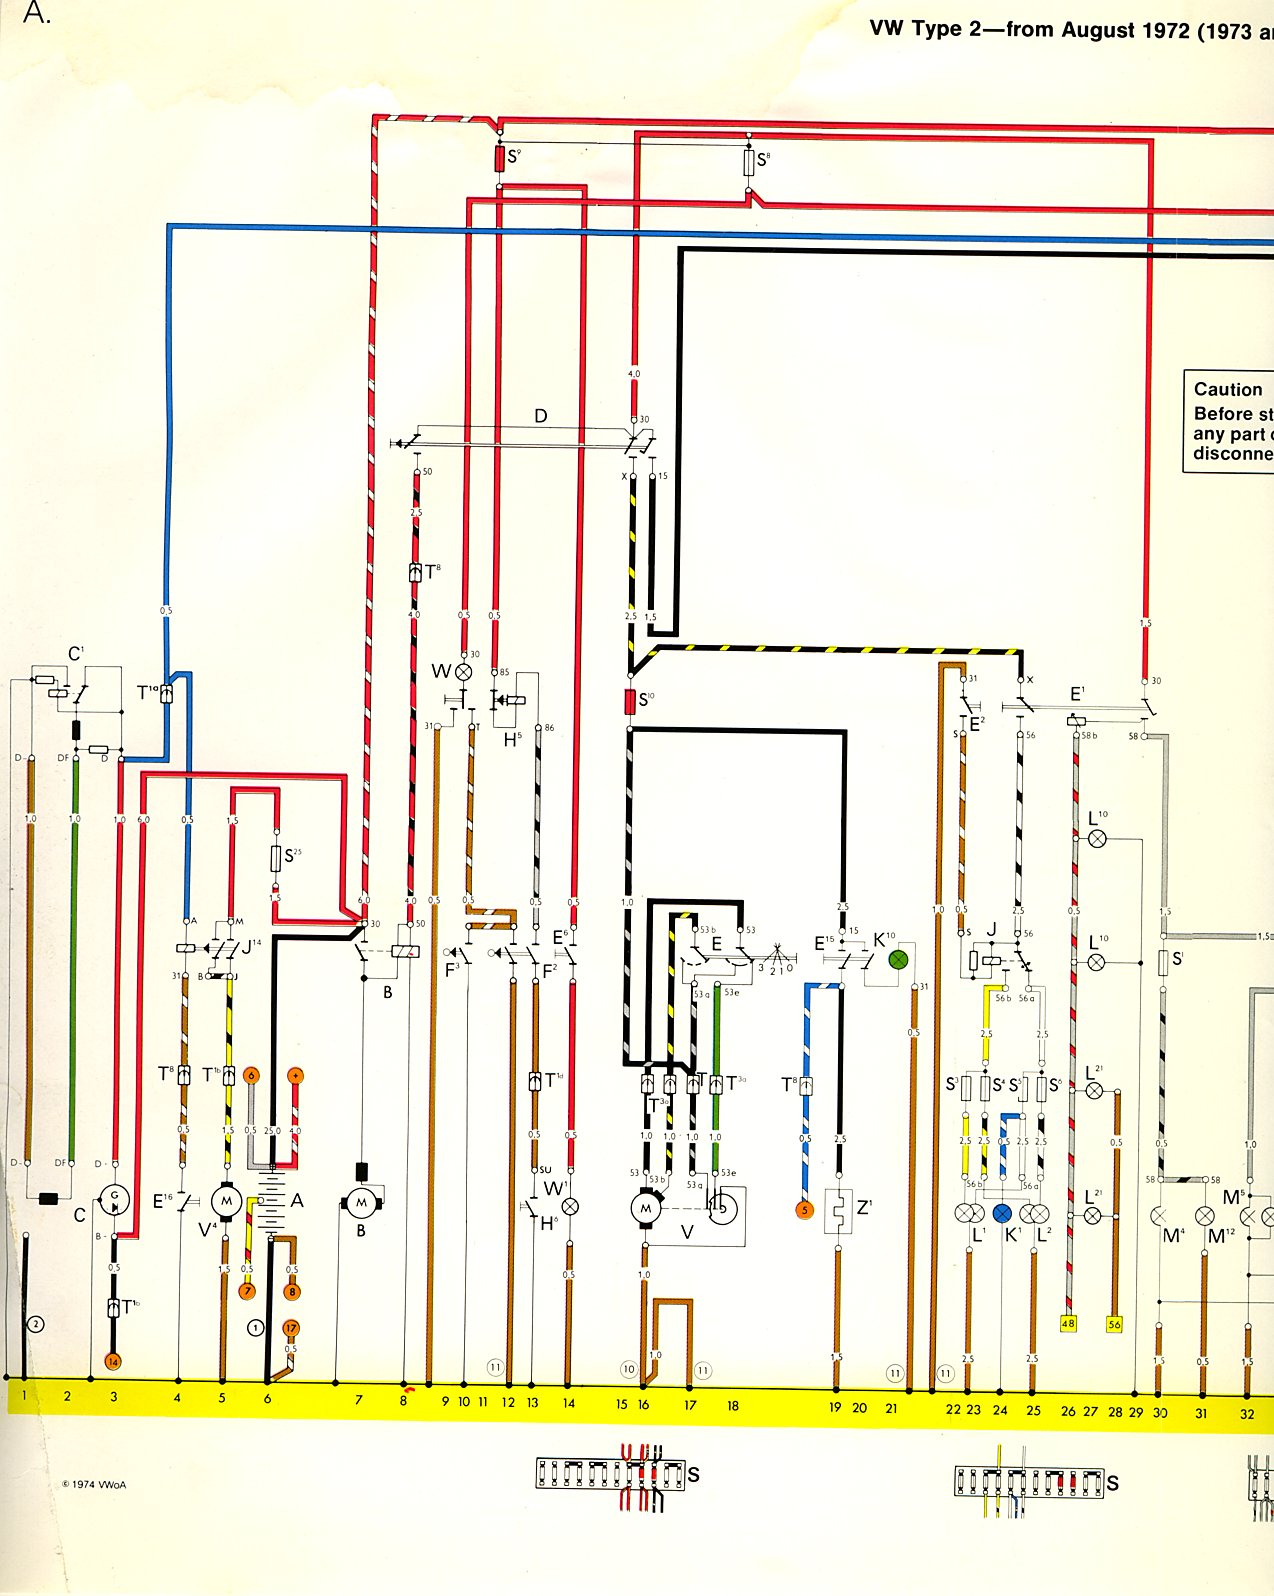 baybus_7374a vw bus wiring diagram 1965 vw bus wiring diagram \u2022 wiring diagrams 1970 vw bug wiring diagram at pacquiaovsvargaslive.co